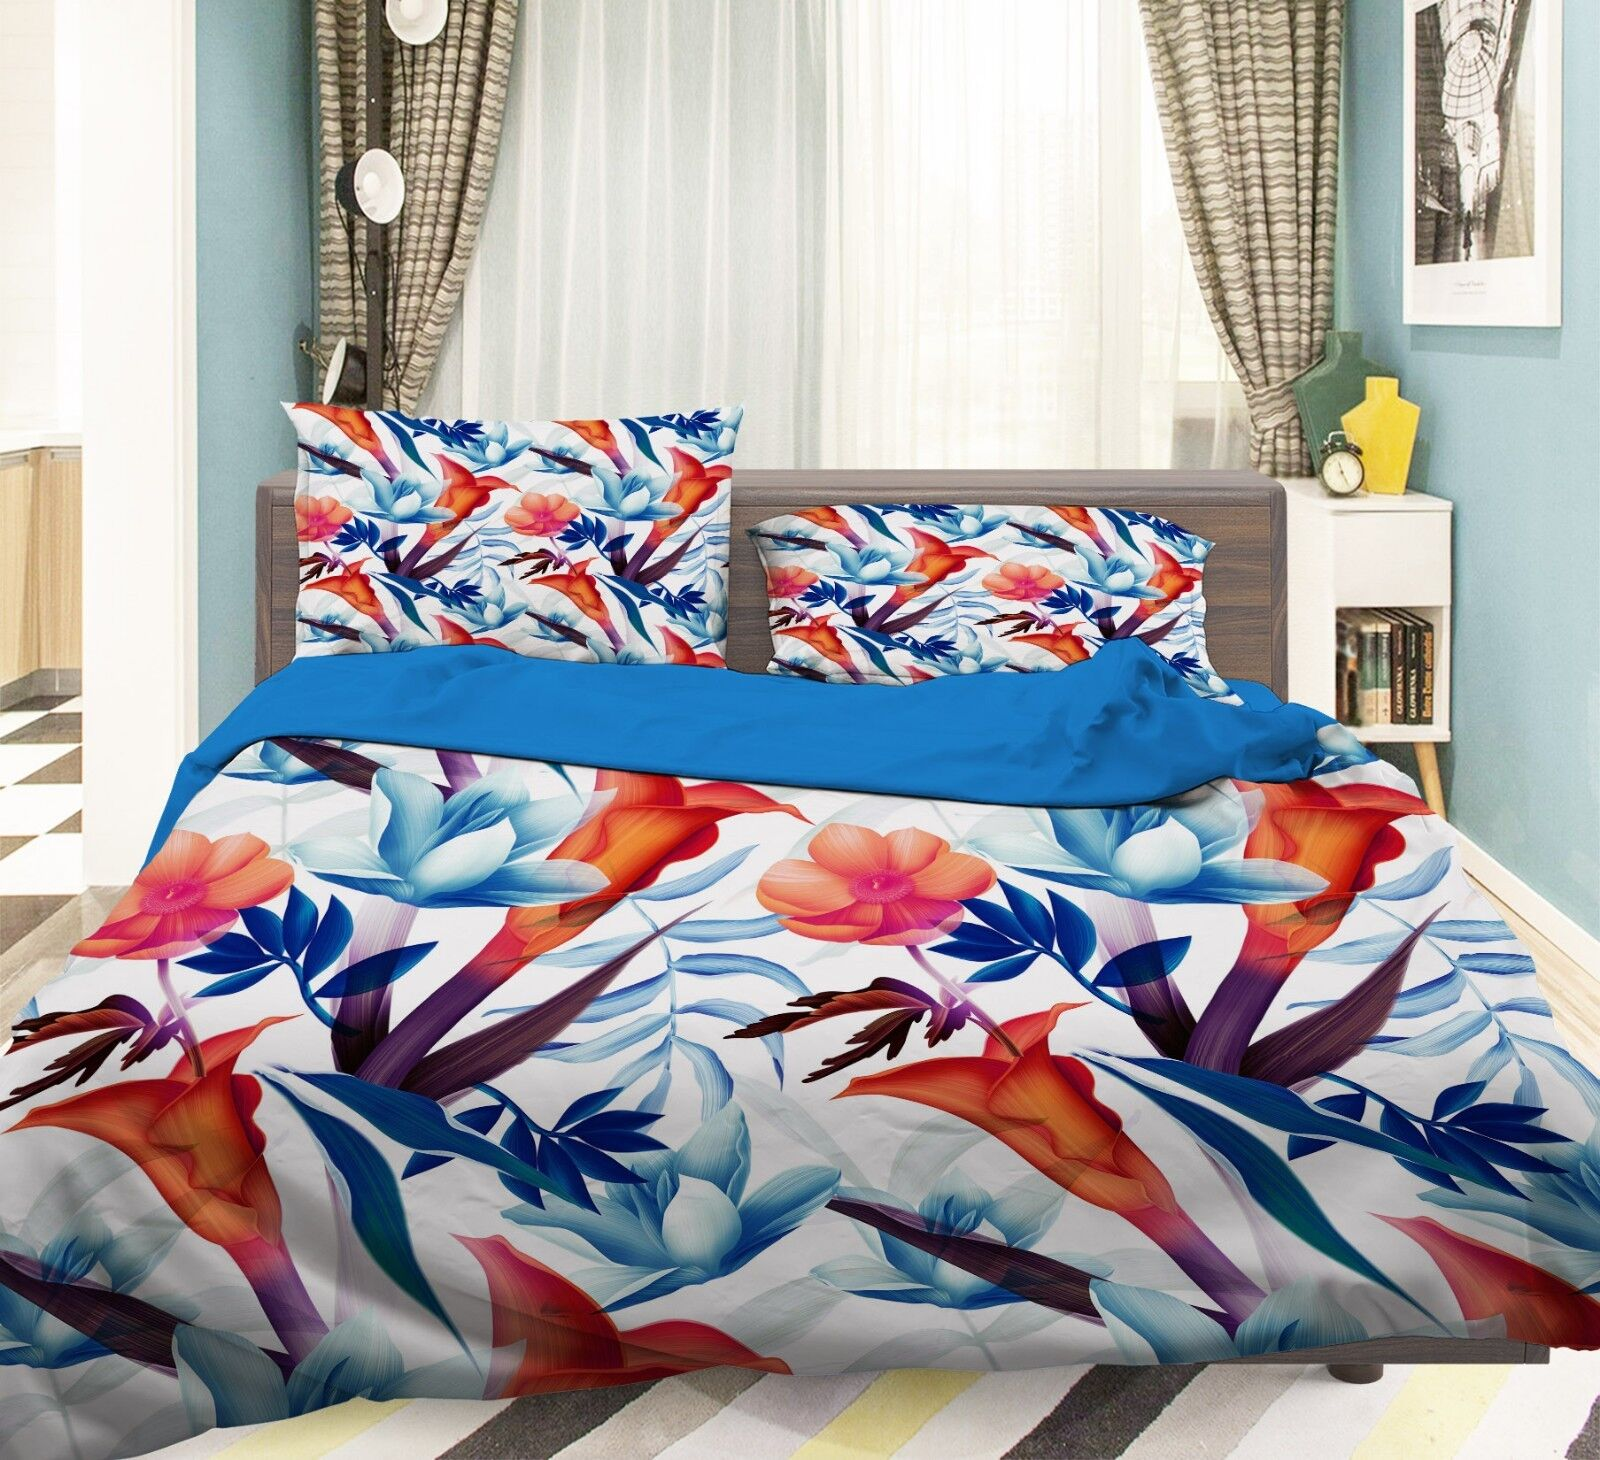 3D Flower Leaves 656 Bed Pillowcases Quilt Duvet Cover Set Single King UK Summer